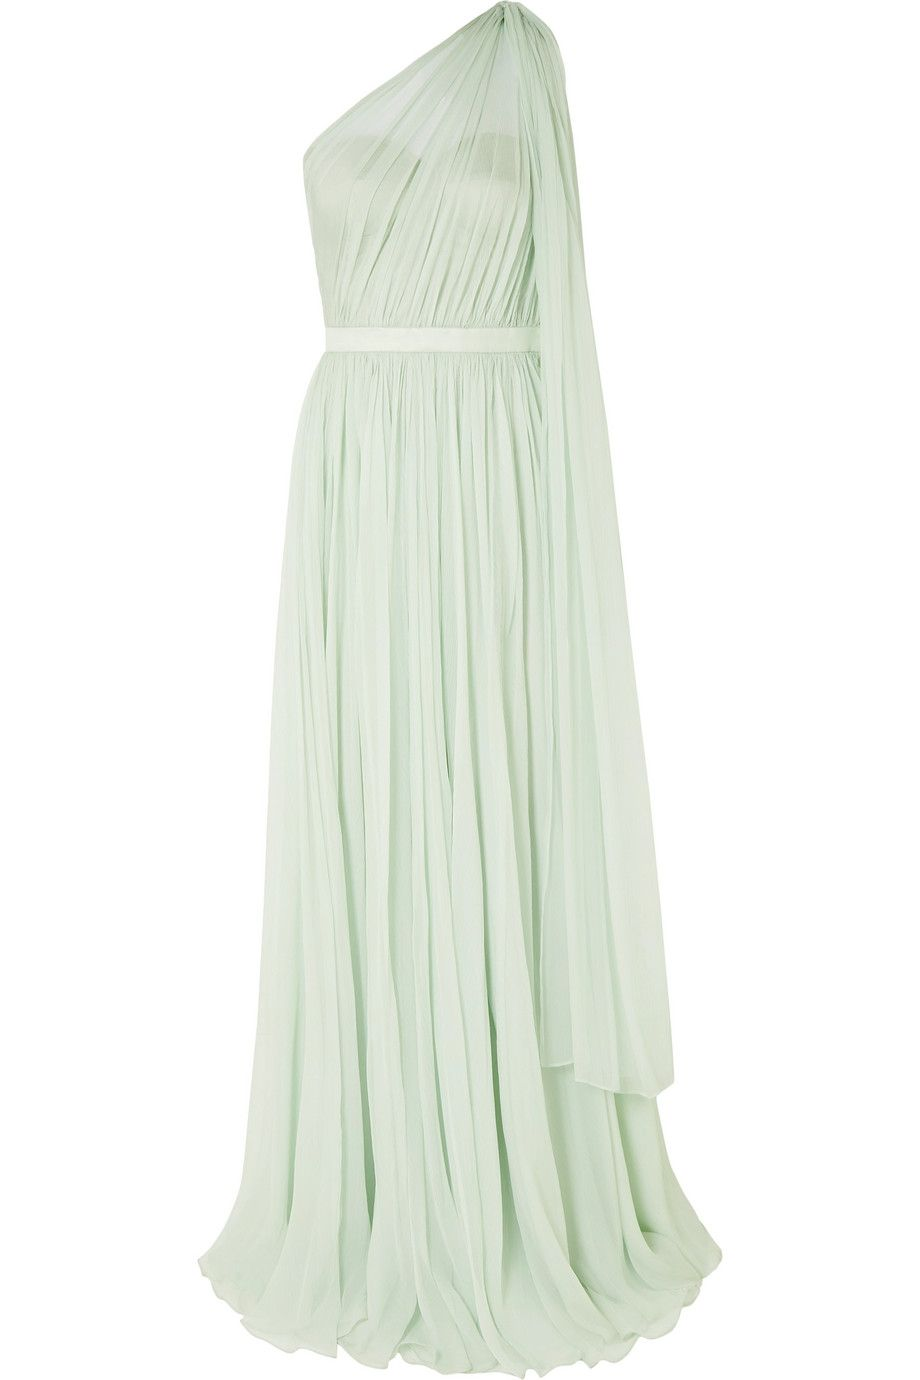 b3072c5f0e40 Alexander McQueen | One-shoulder crinkled silk-chiffon and satin gown |  NET-A-PORTER.COM